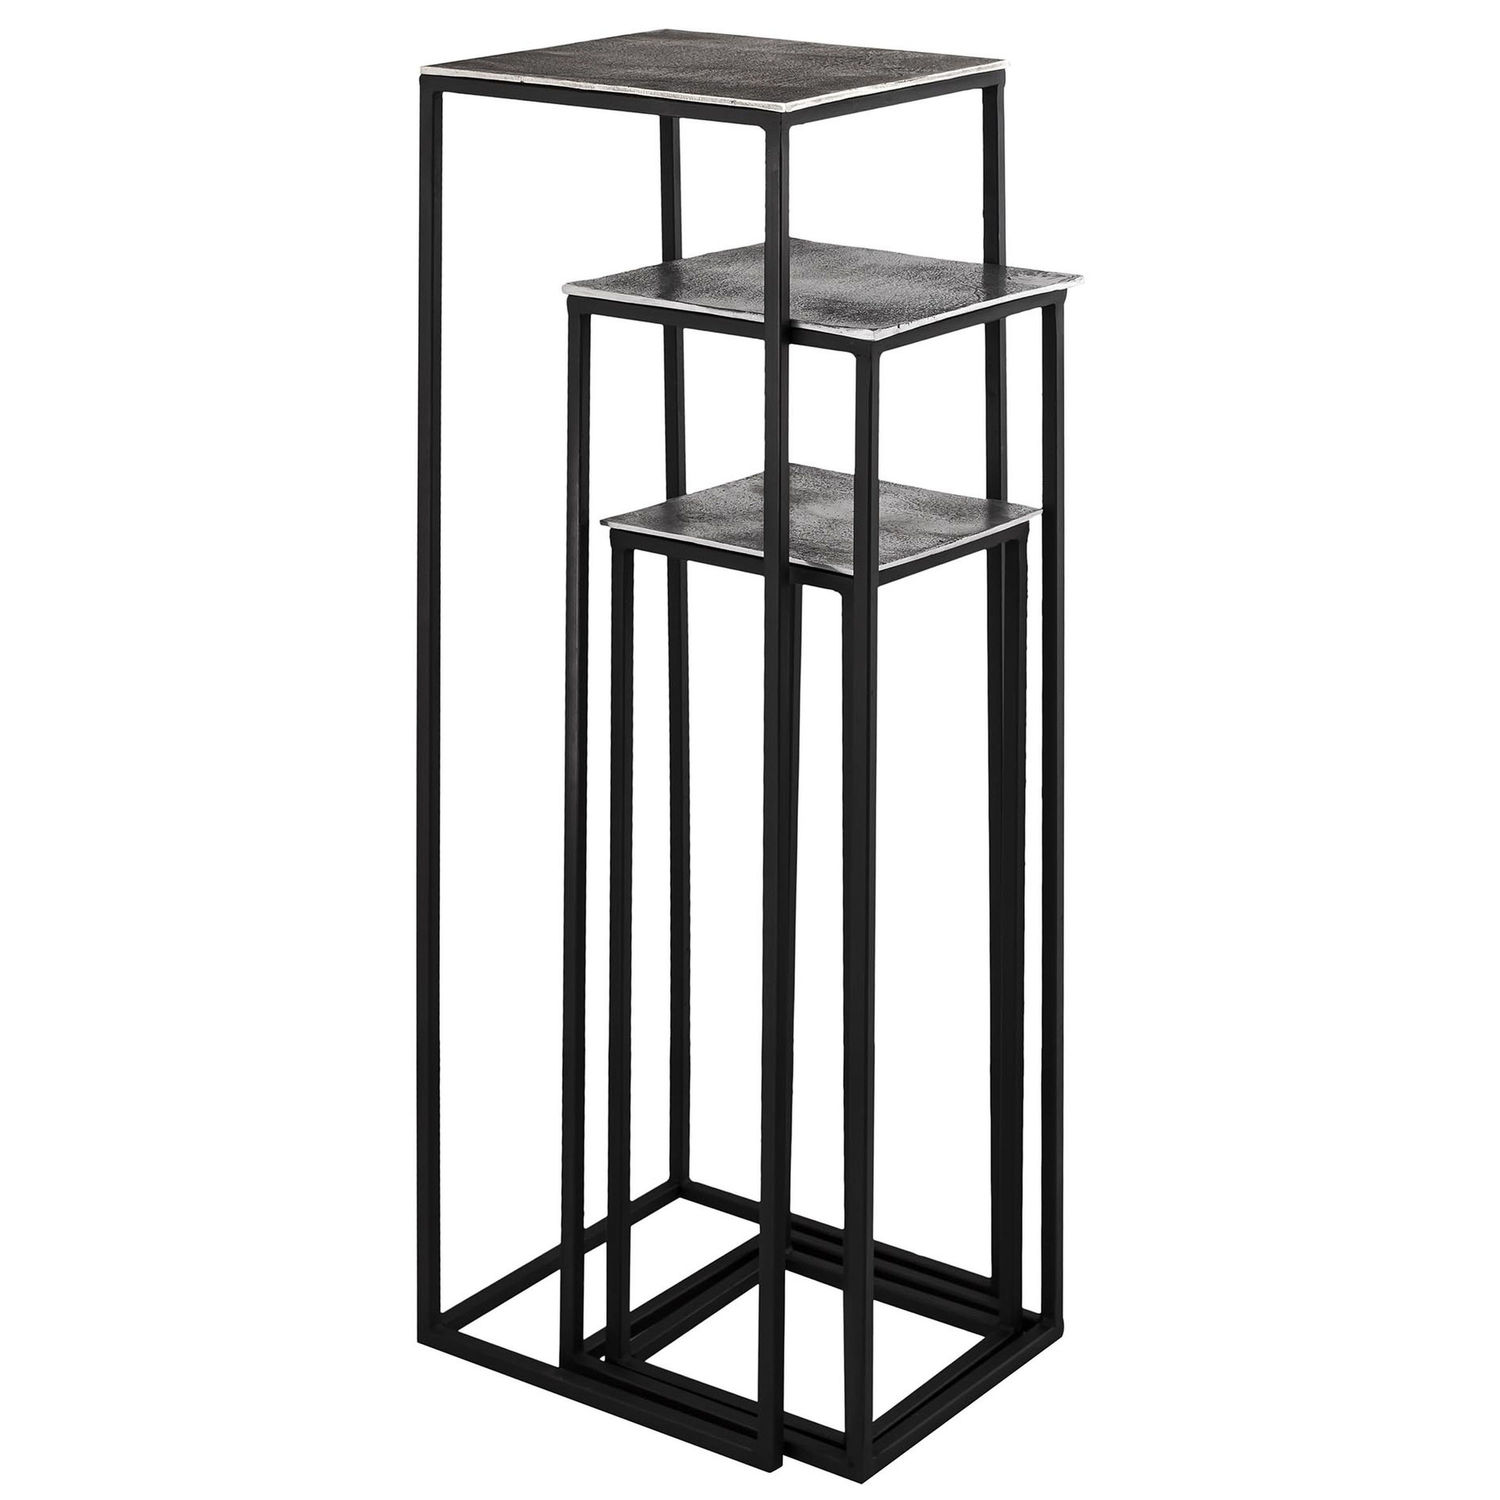 Farrah Collection Silver set of Three large Display Tables by Hill Interiors